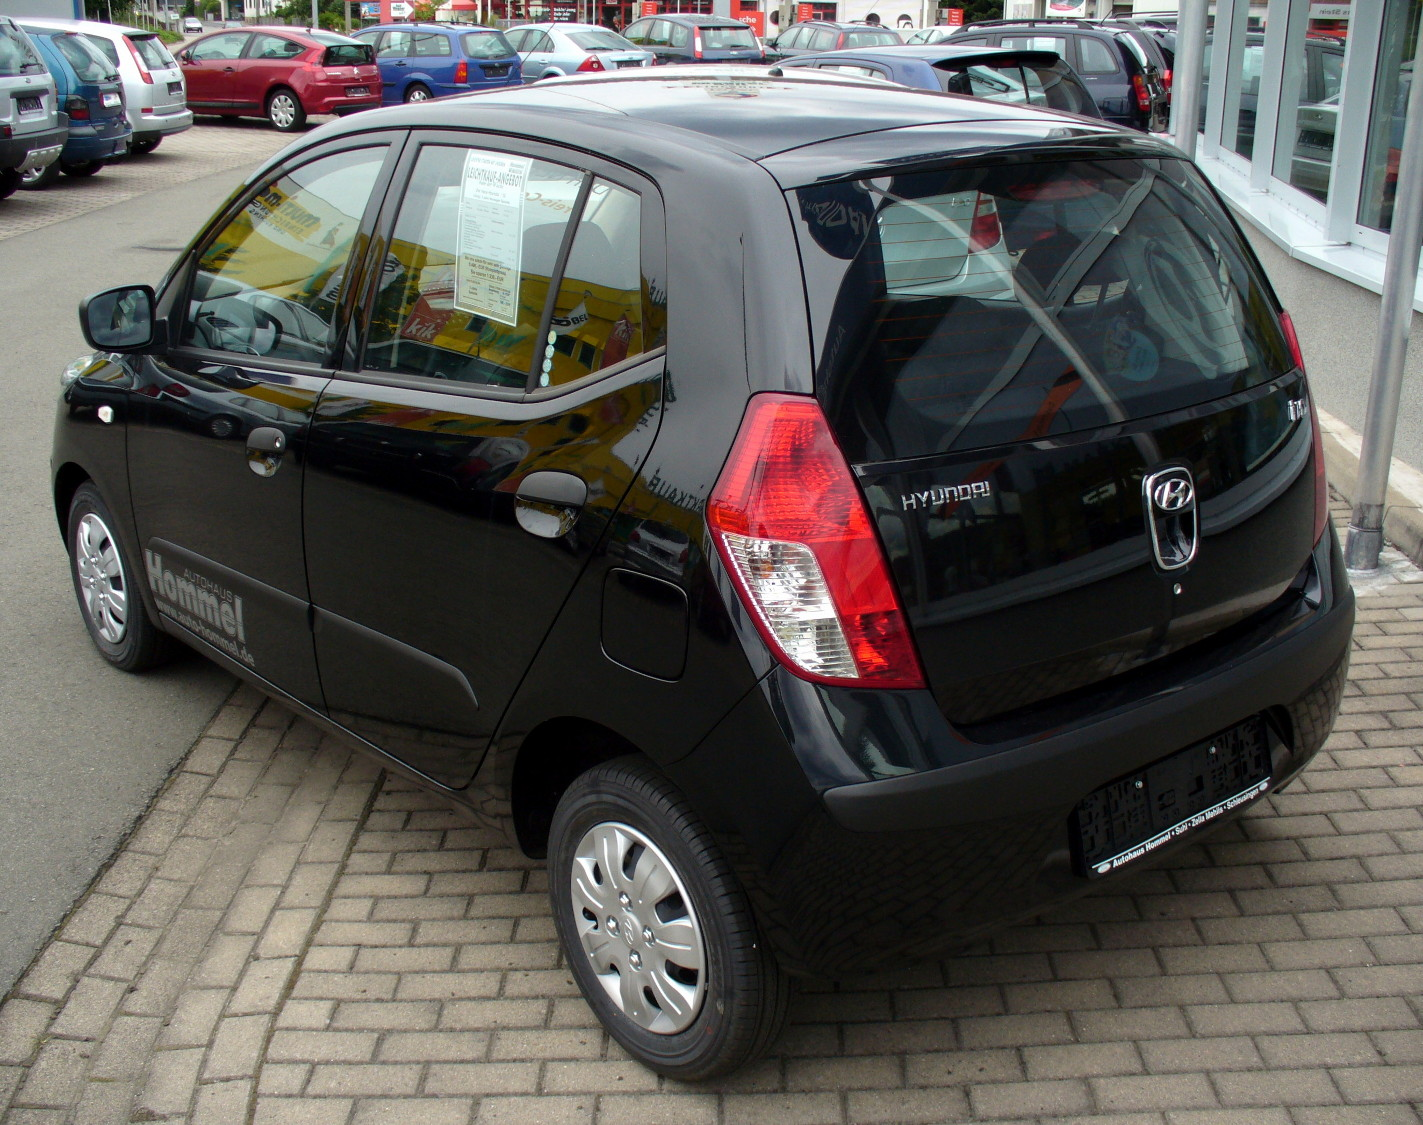 http://upload.wikimedia.org/wikipedia/commons/3/3f/Hyundai_i10_Heck.JPG